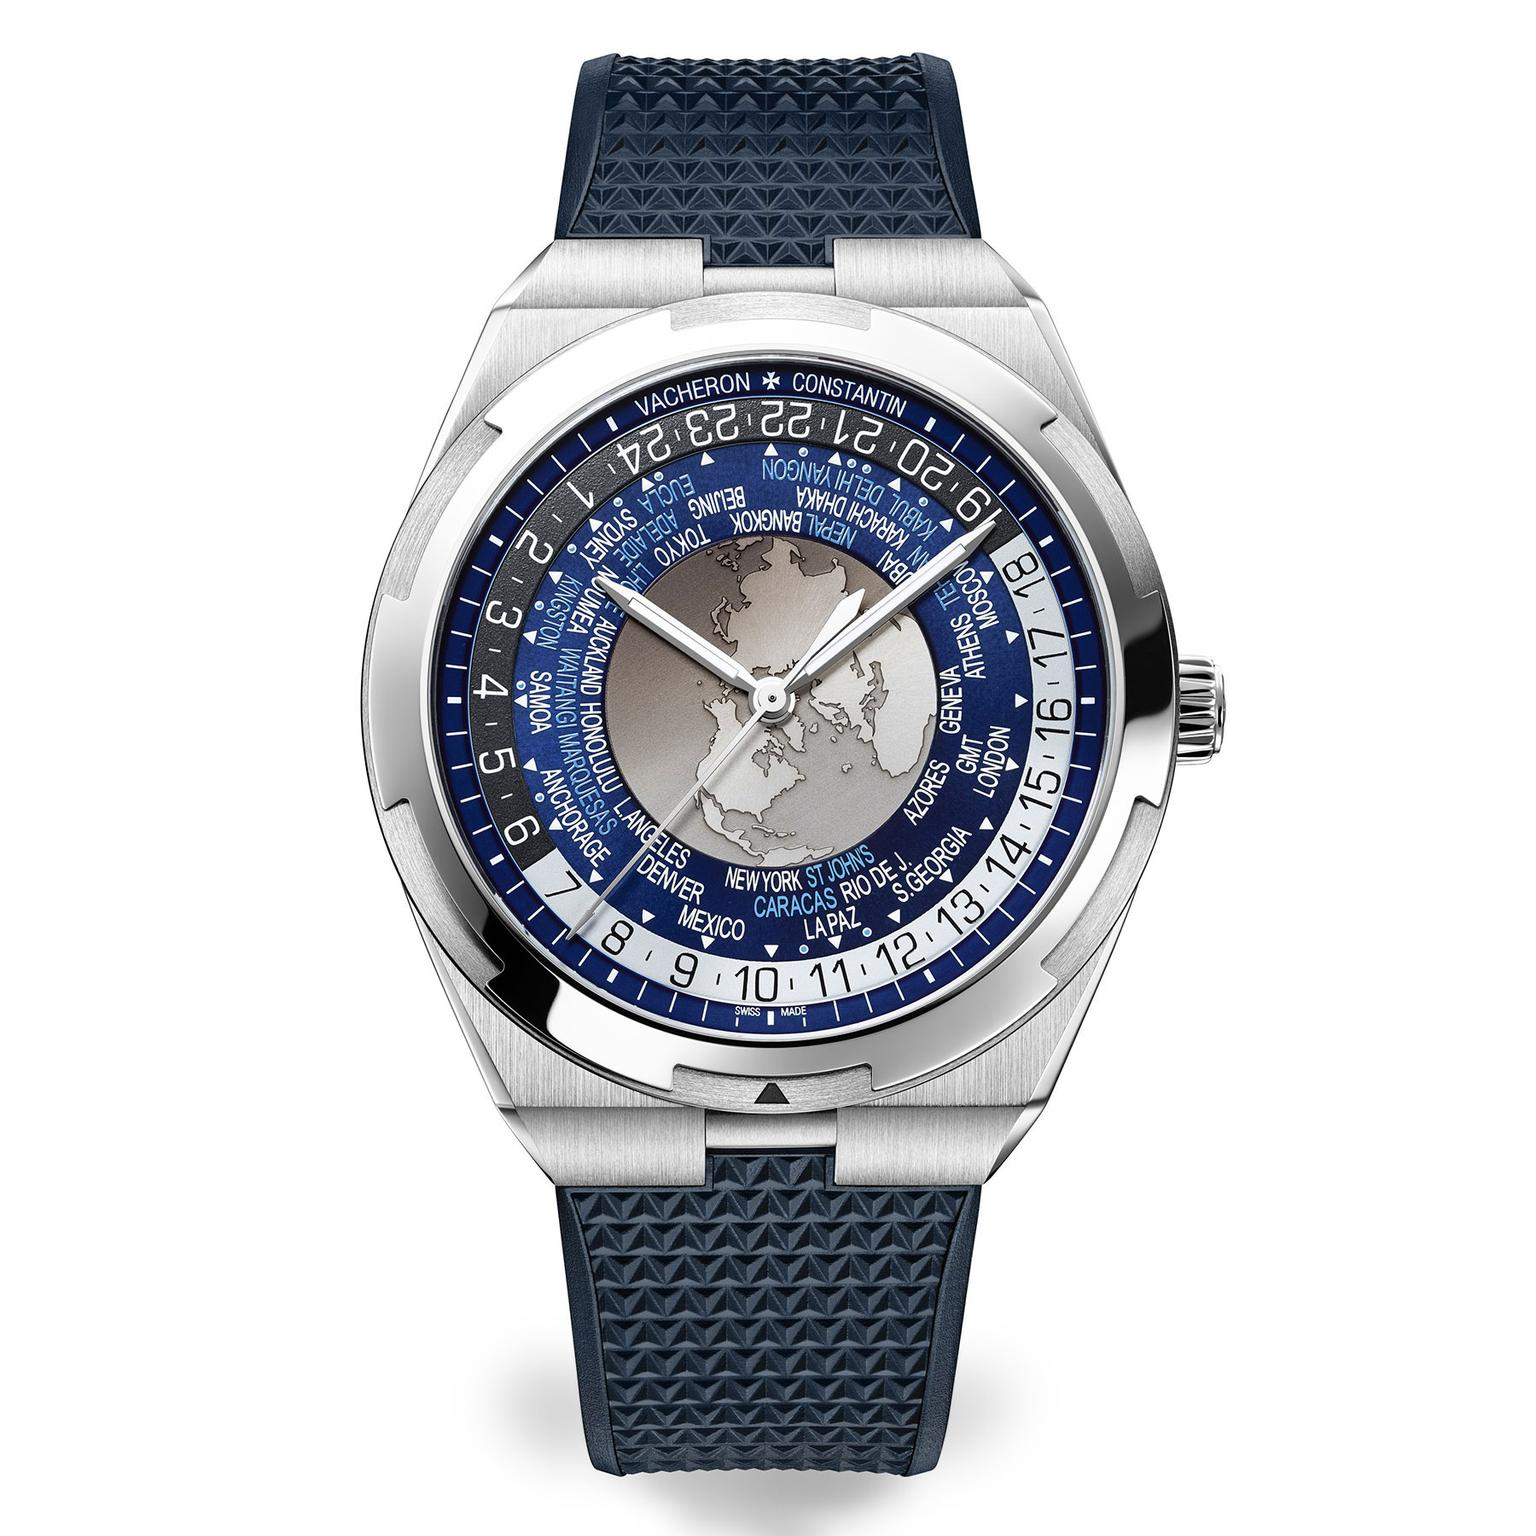 Vacheron Constantin Overseas watch